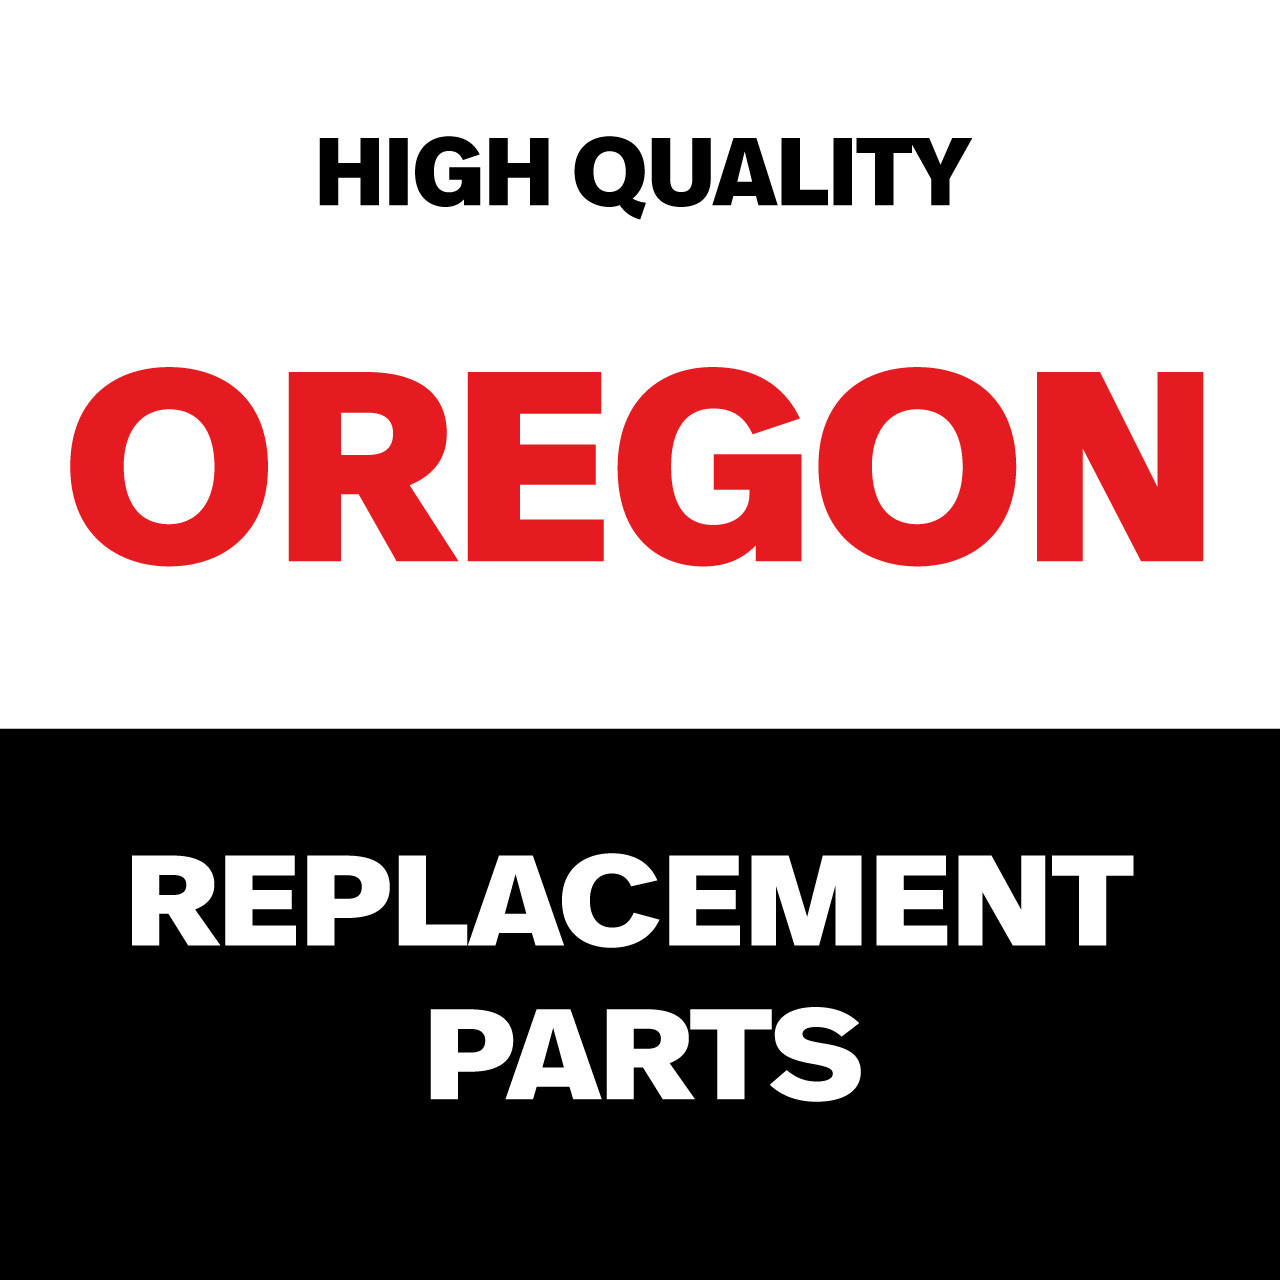 OREGON S07092200 - PIN 1/16 IN CLIP - Product Number S07092200 OREGON